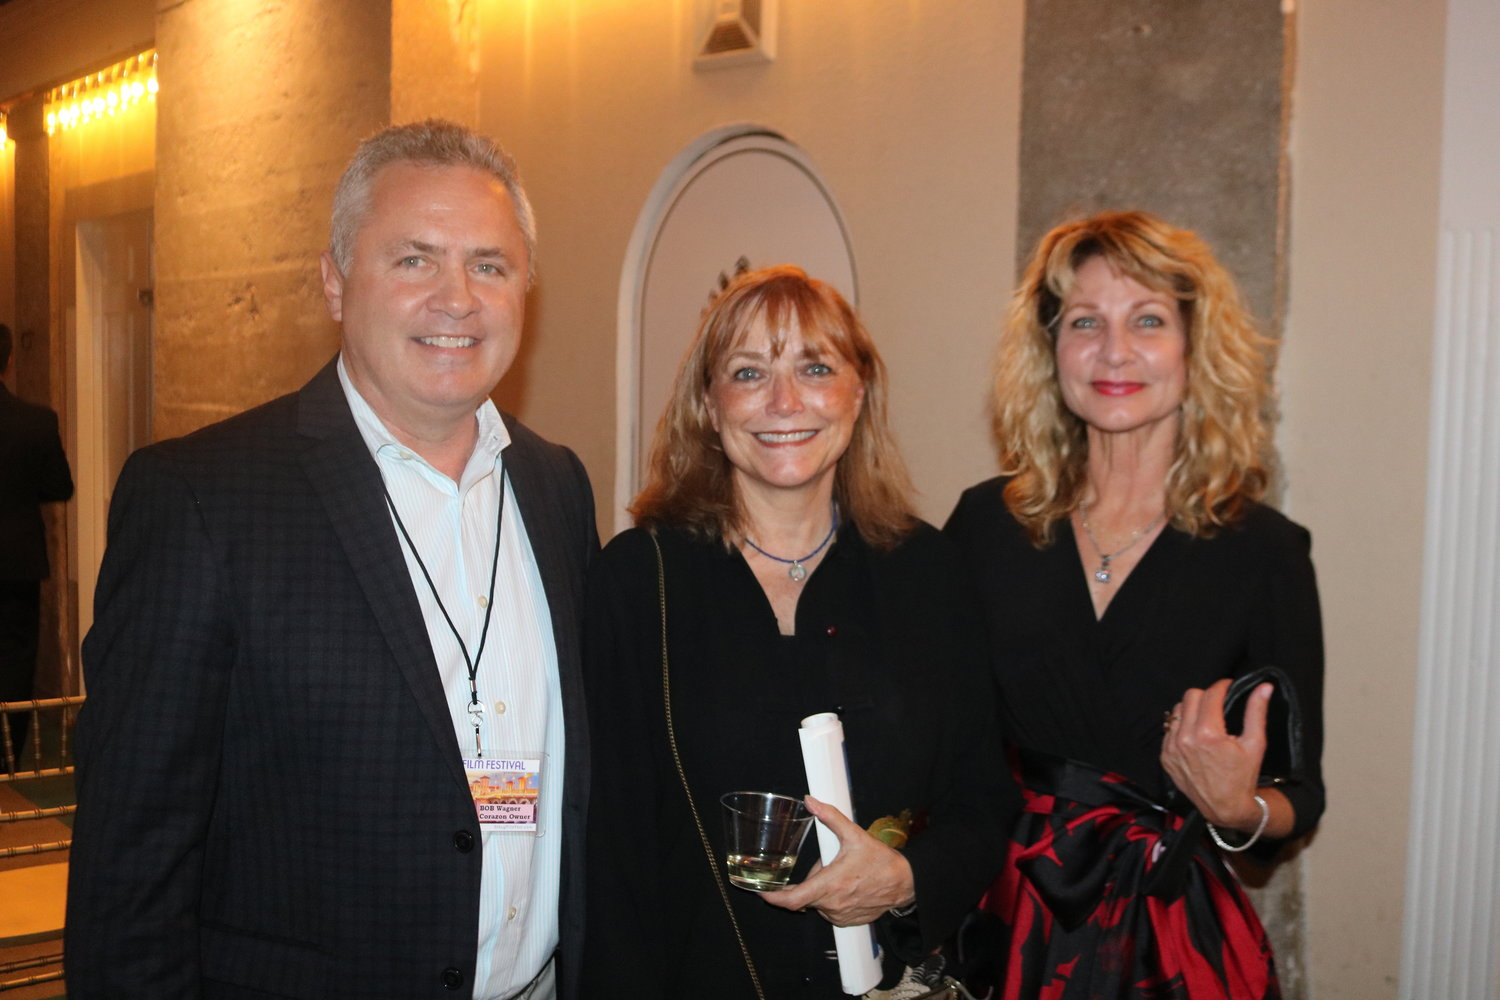 Actress and director Karen Allen (center) stands with The Corazon Cinema & Café Owner Karla Wagner and husband Bob.